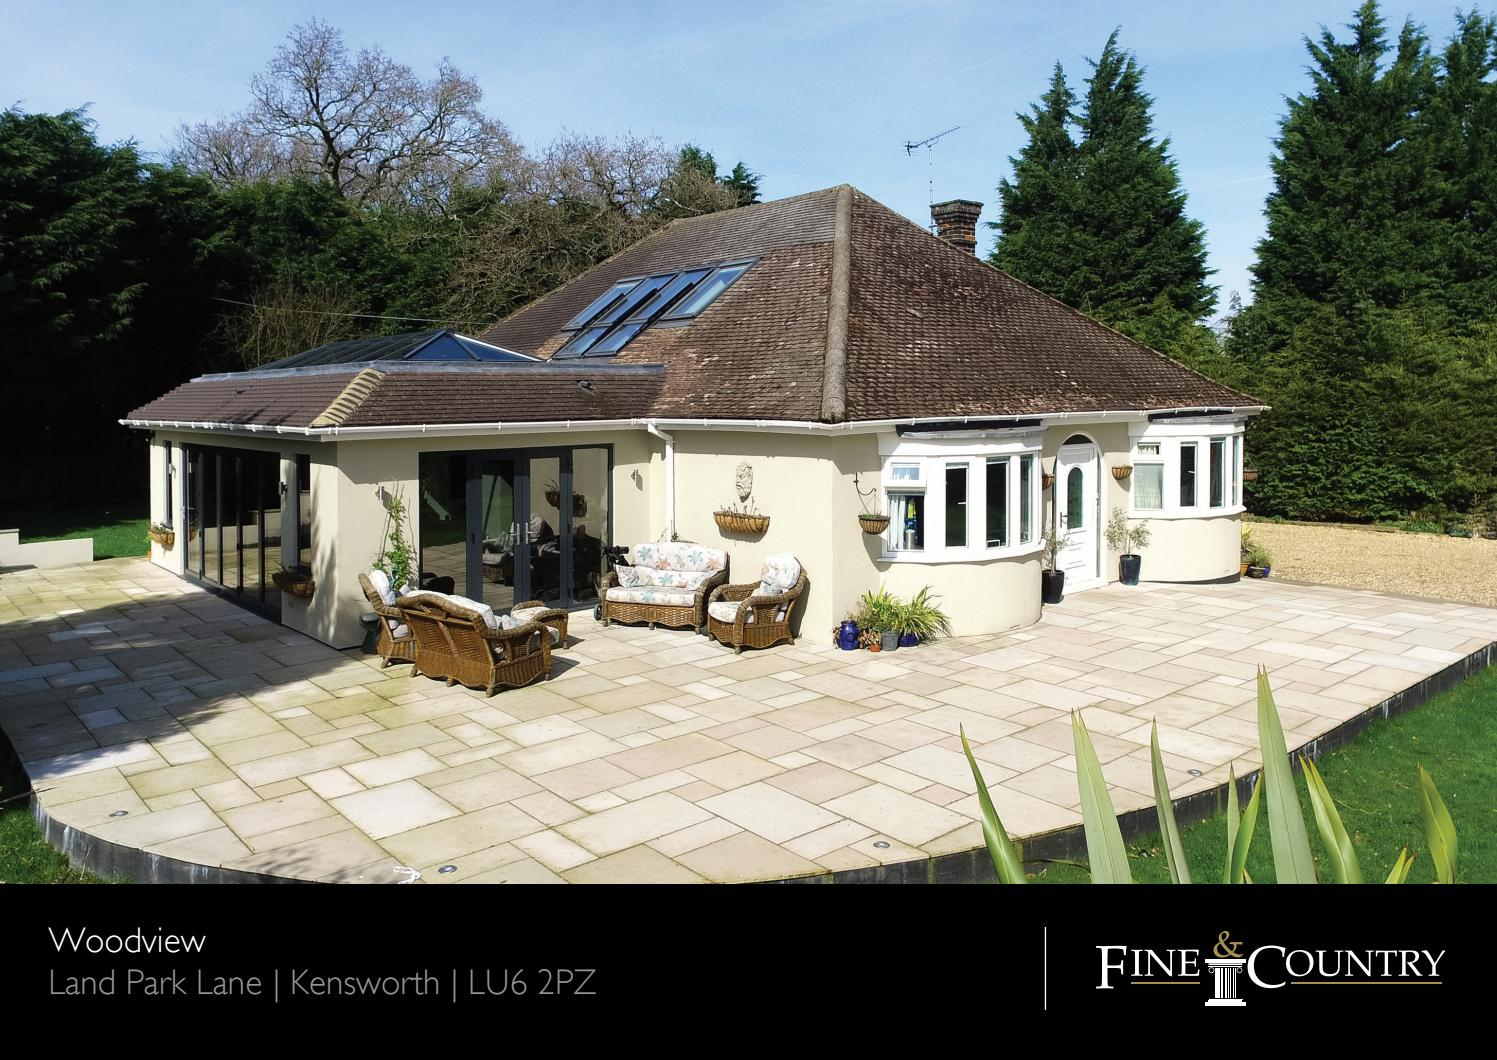 Land Park Lane, Kensworth by Fine & Country - issuu